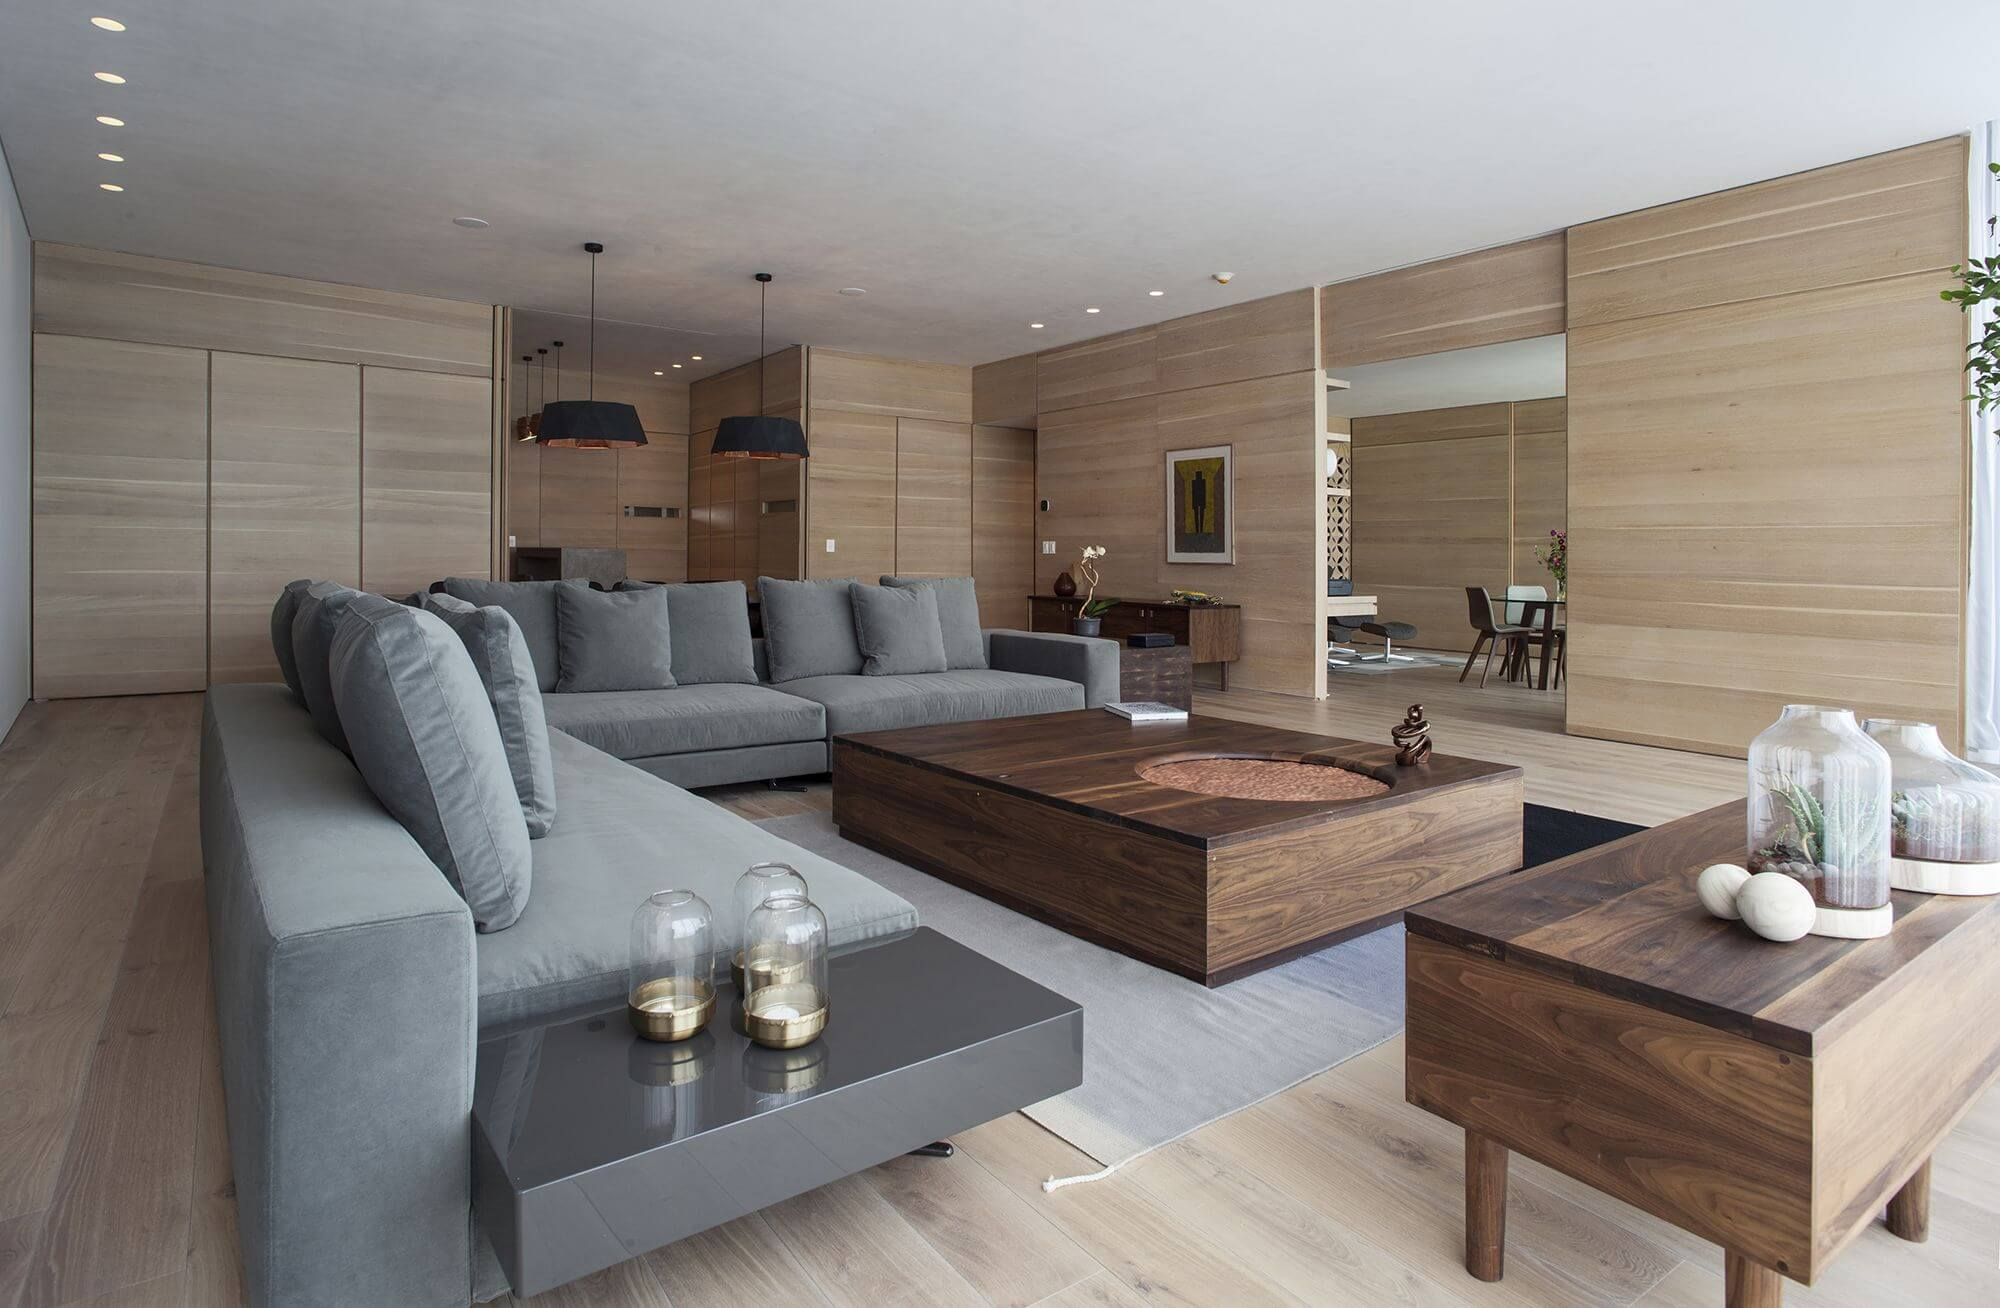 Living room with many wooden features finished with Rubio Monocoat.